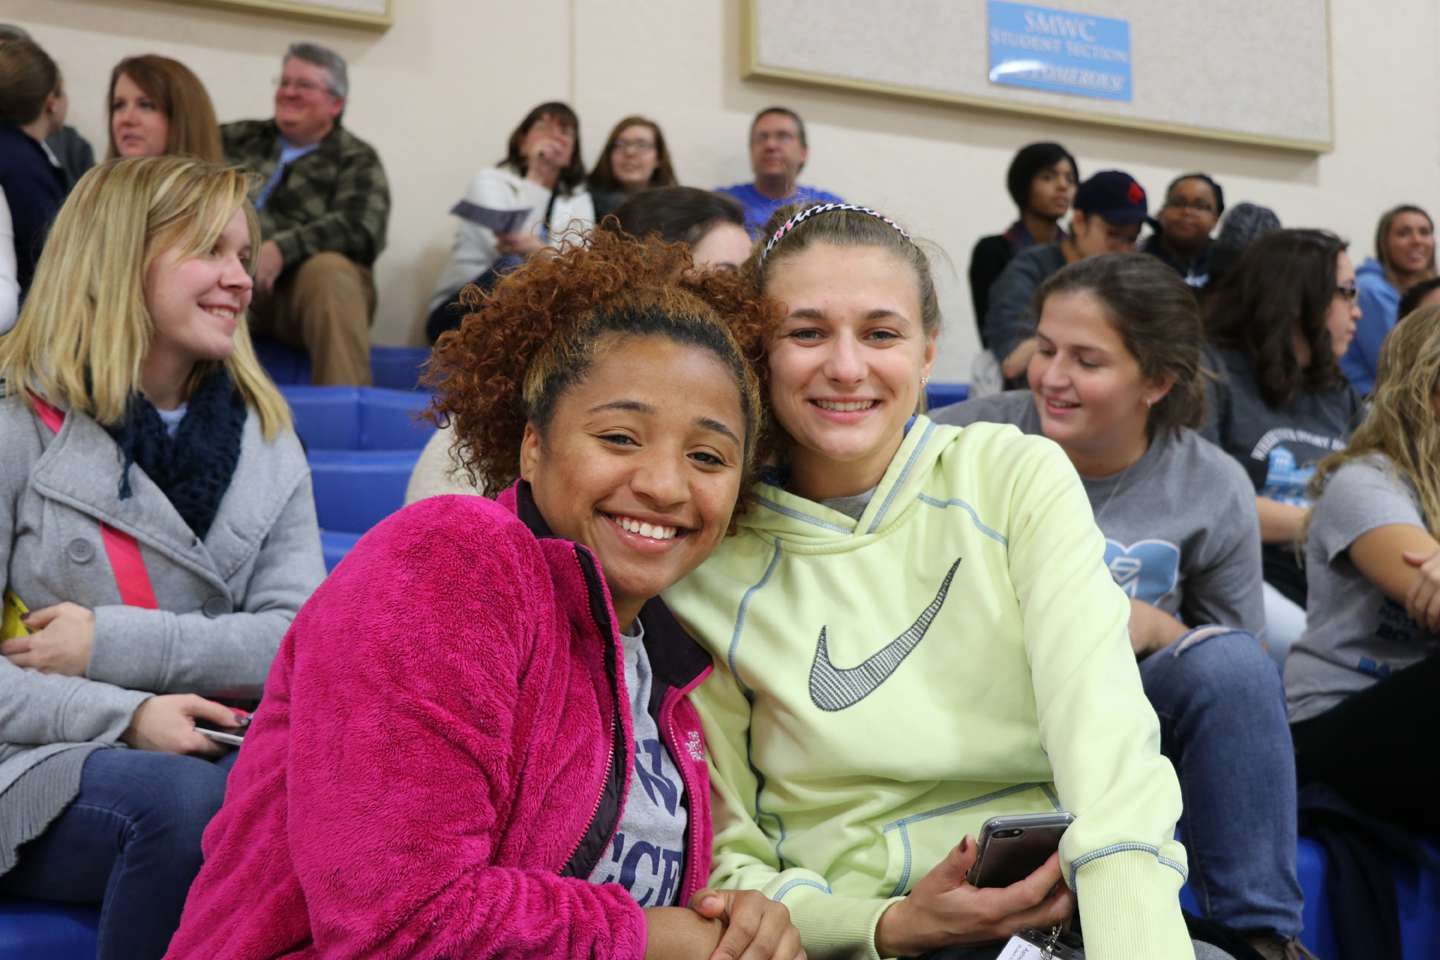 Two friends sitting in the bleachers, holding a phone and smiling.